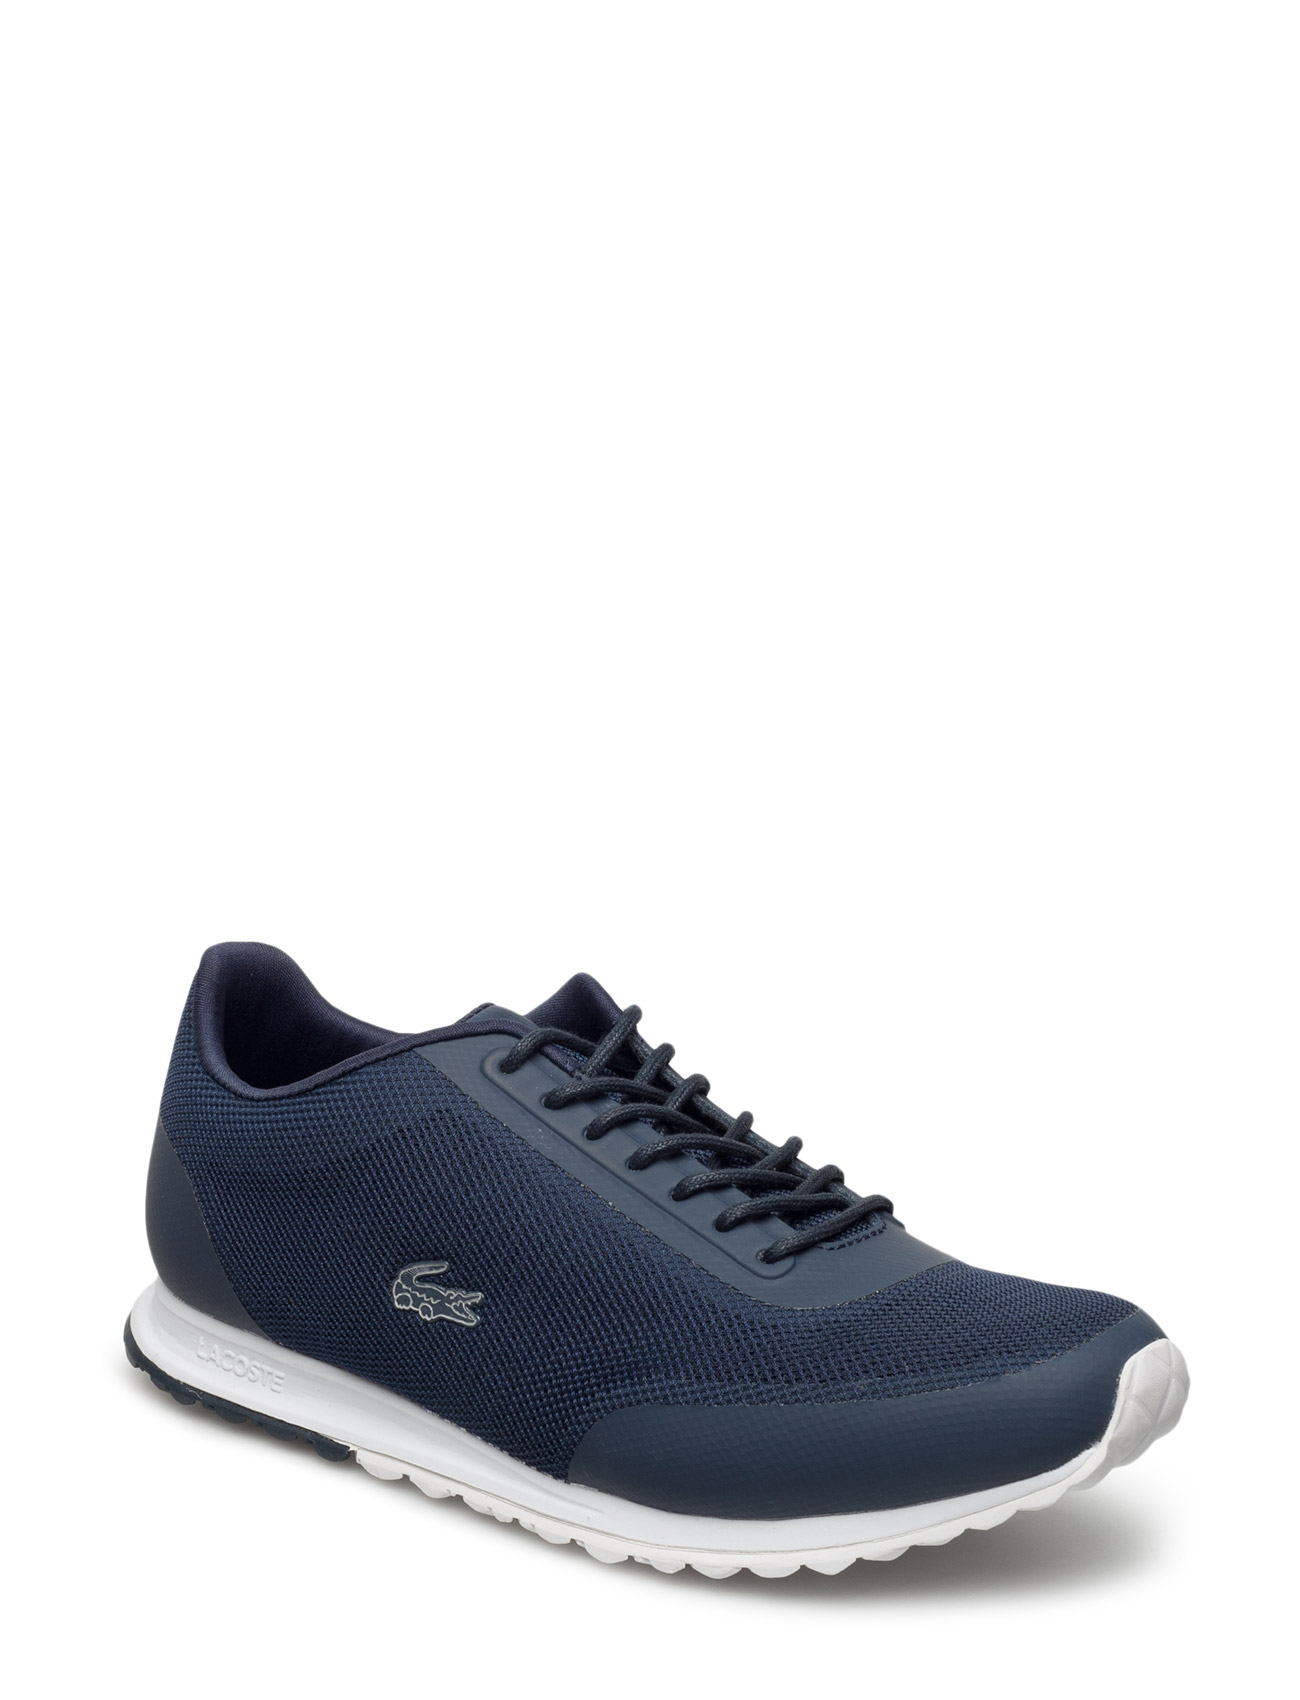 Helaine Runner 116 3 Lacoste Shoes Sneakers til Damer i